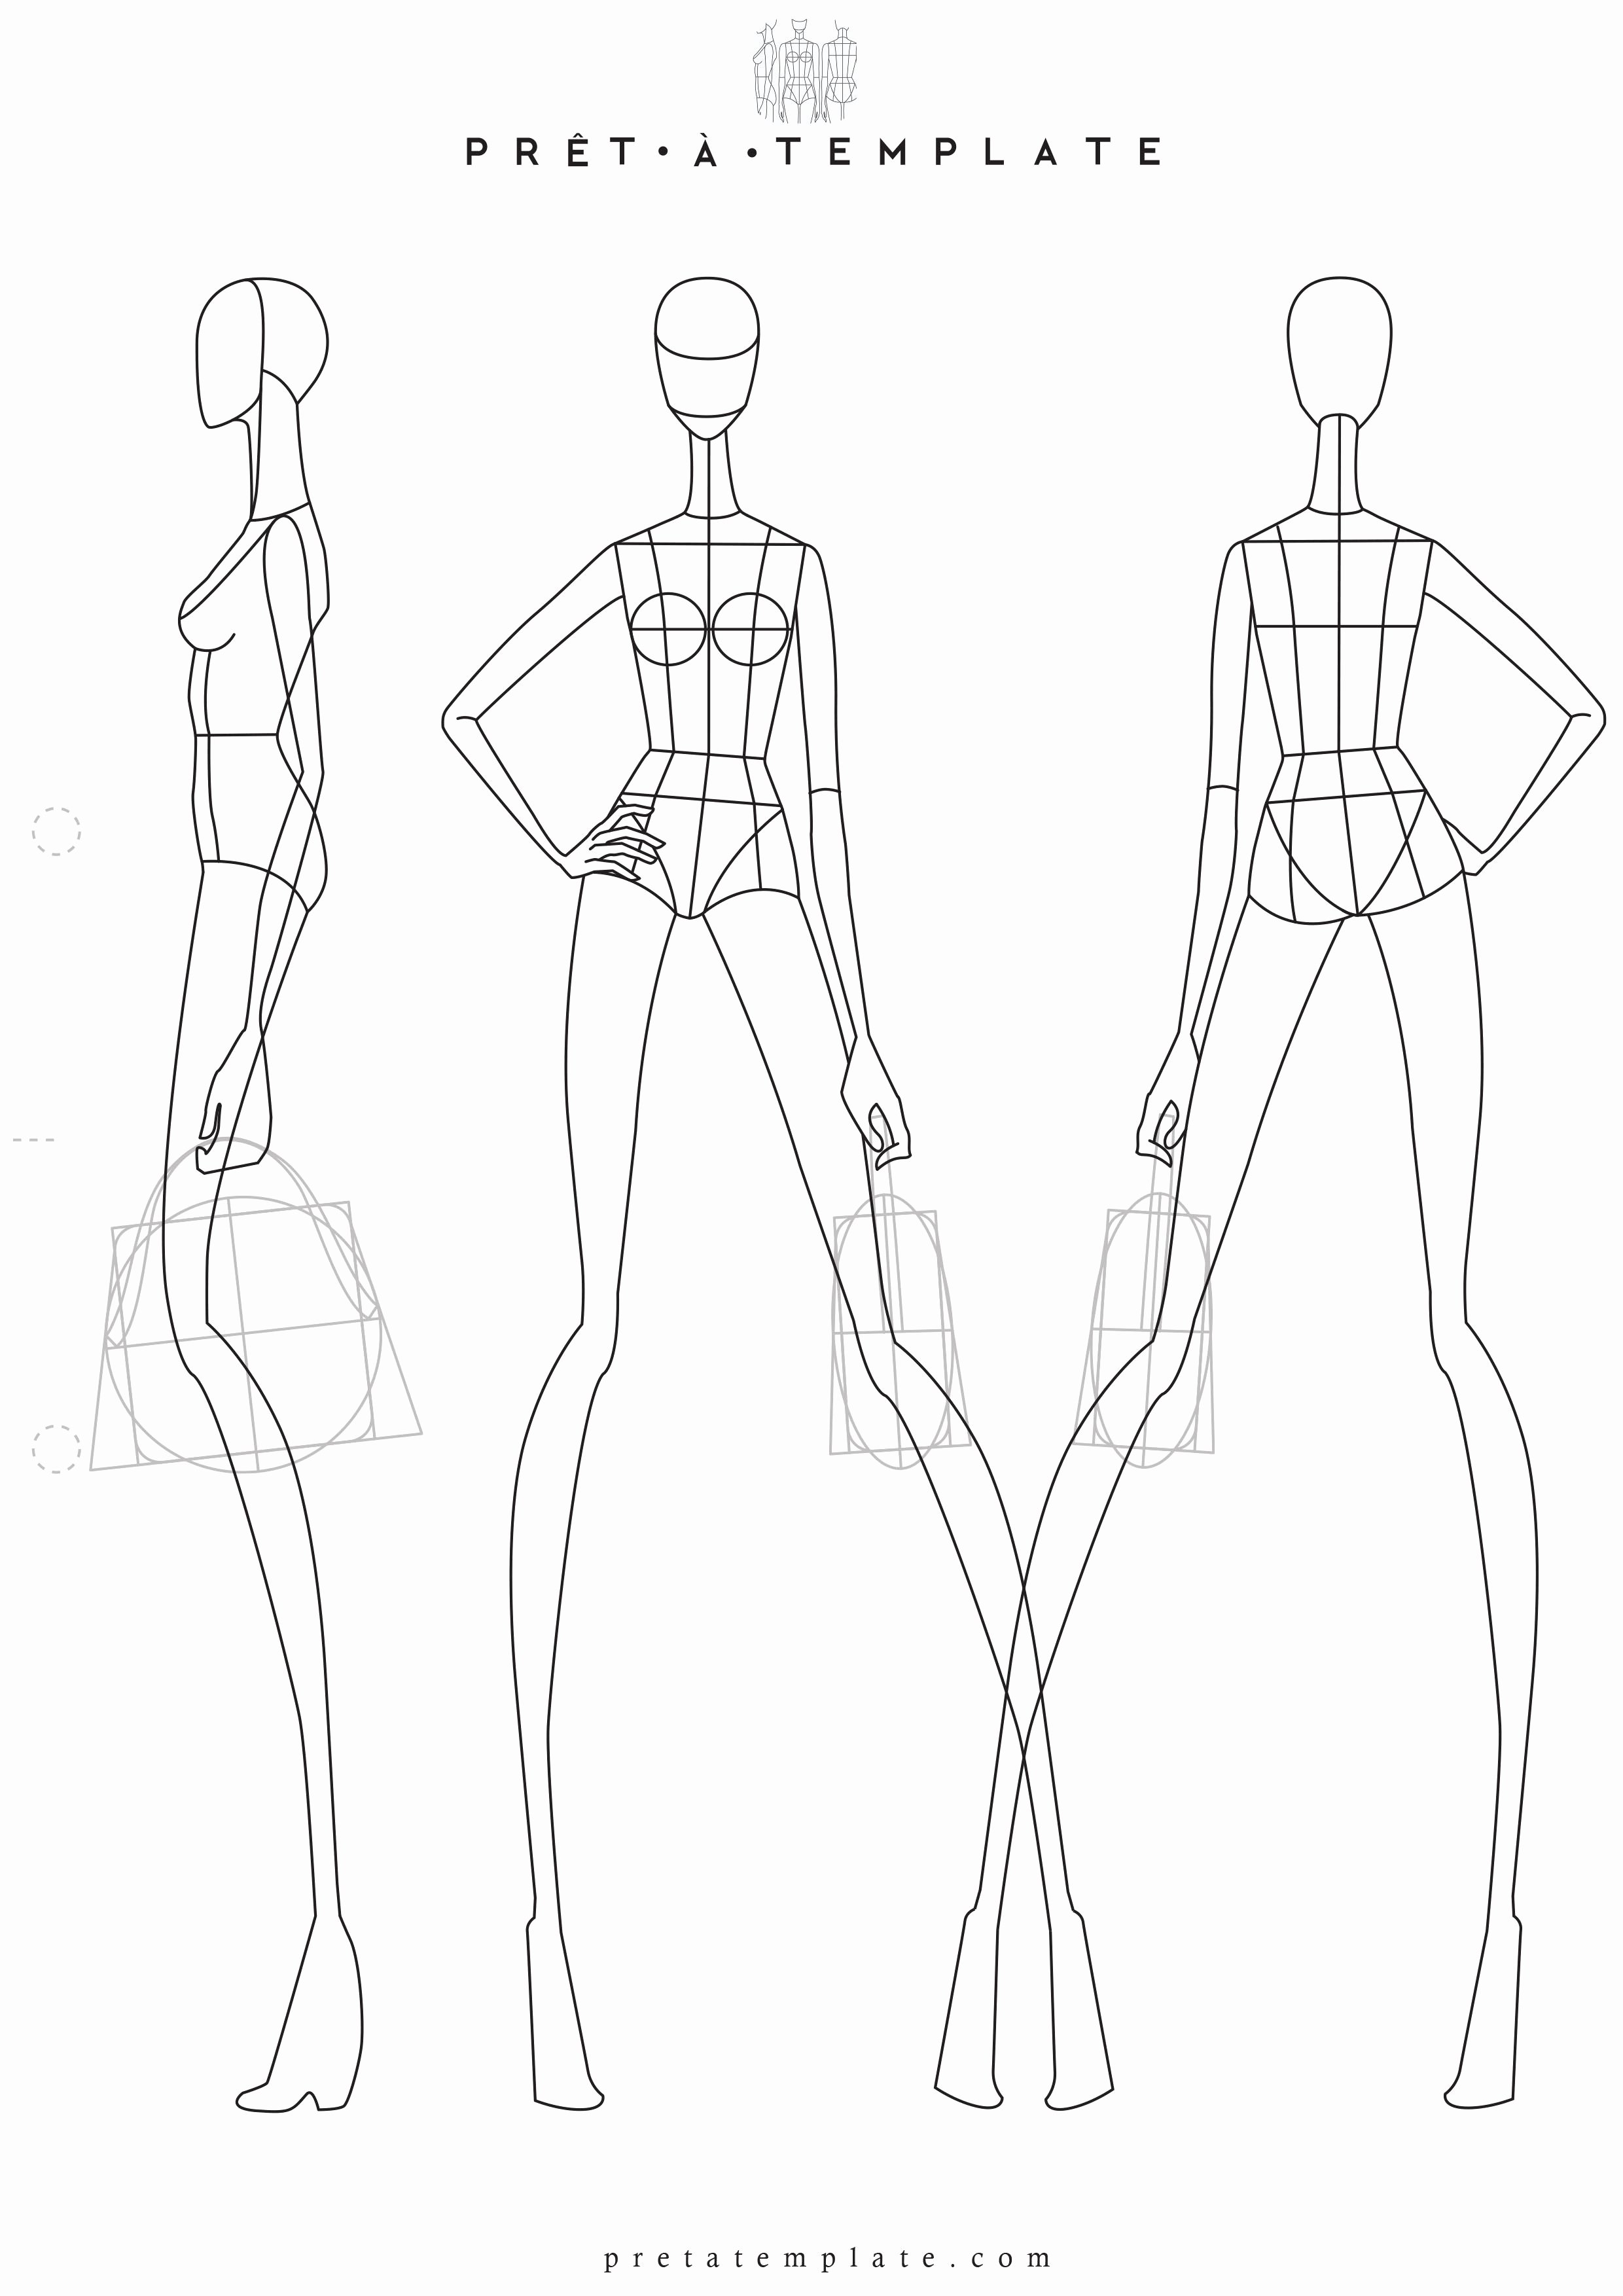 Body Drawing Template Lovely Woman Body Figure Fashion Template D I Y Your Own Fashion